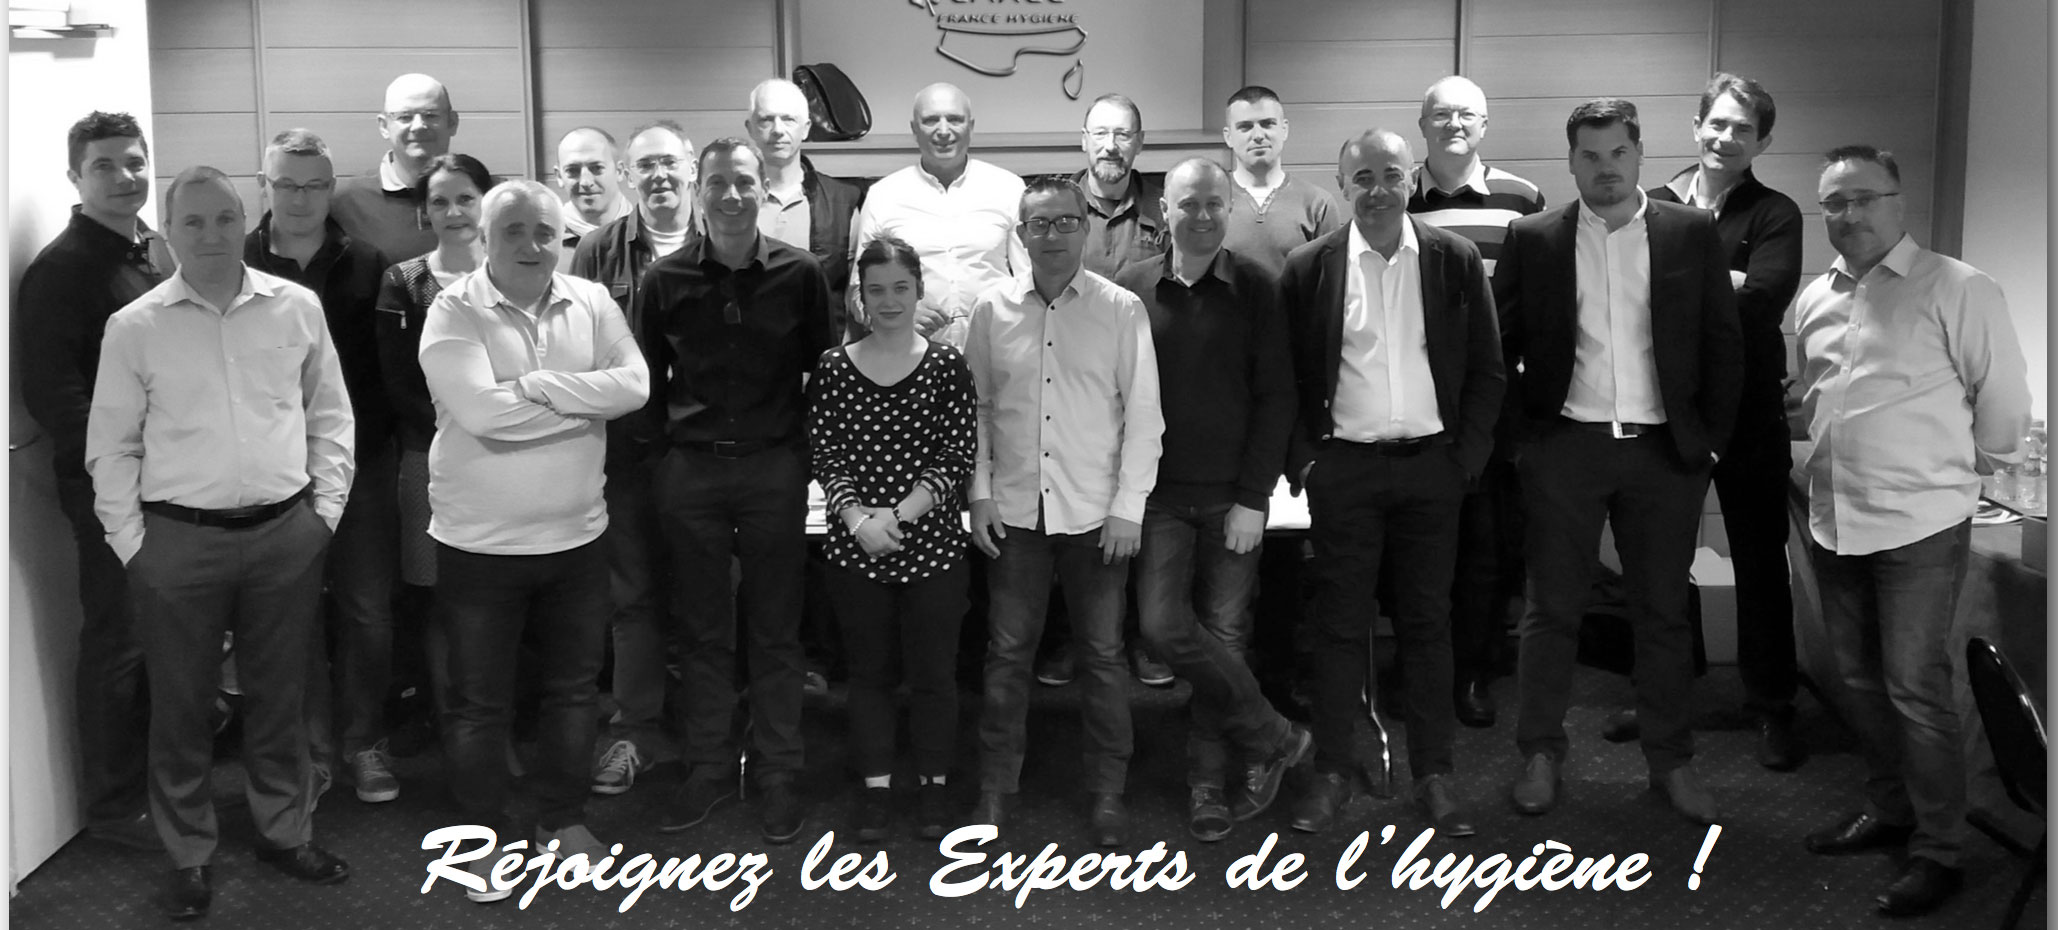 les-experts-de-l'hygiene